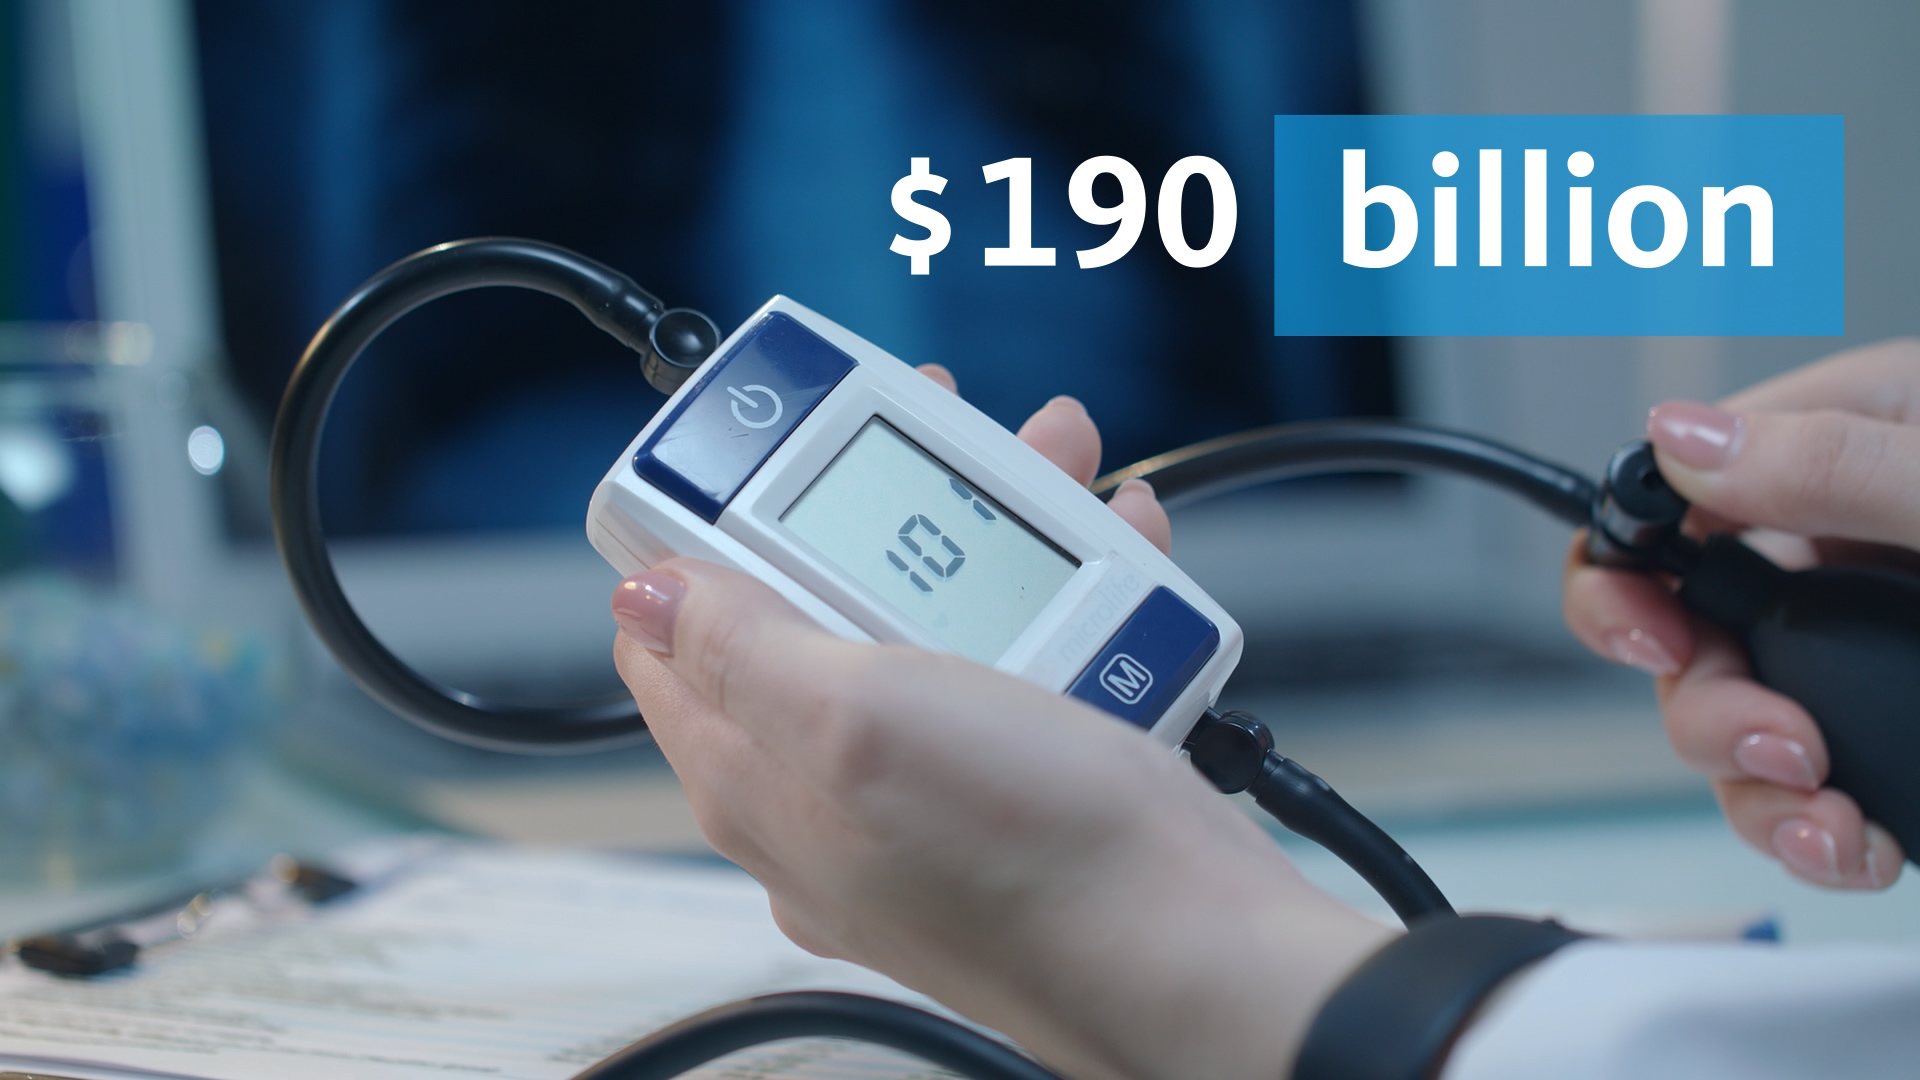 190 billion in text next to a blood pressure monitor